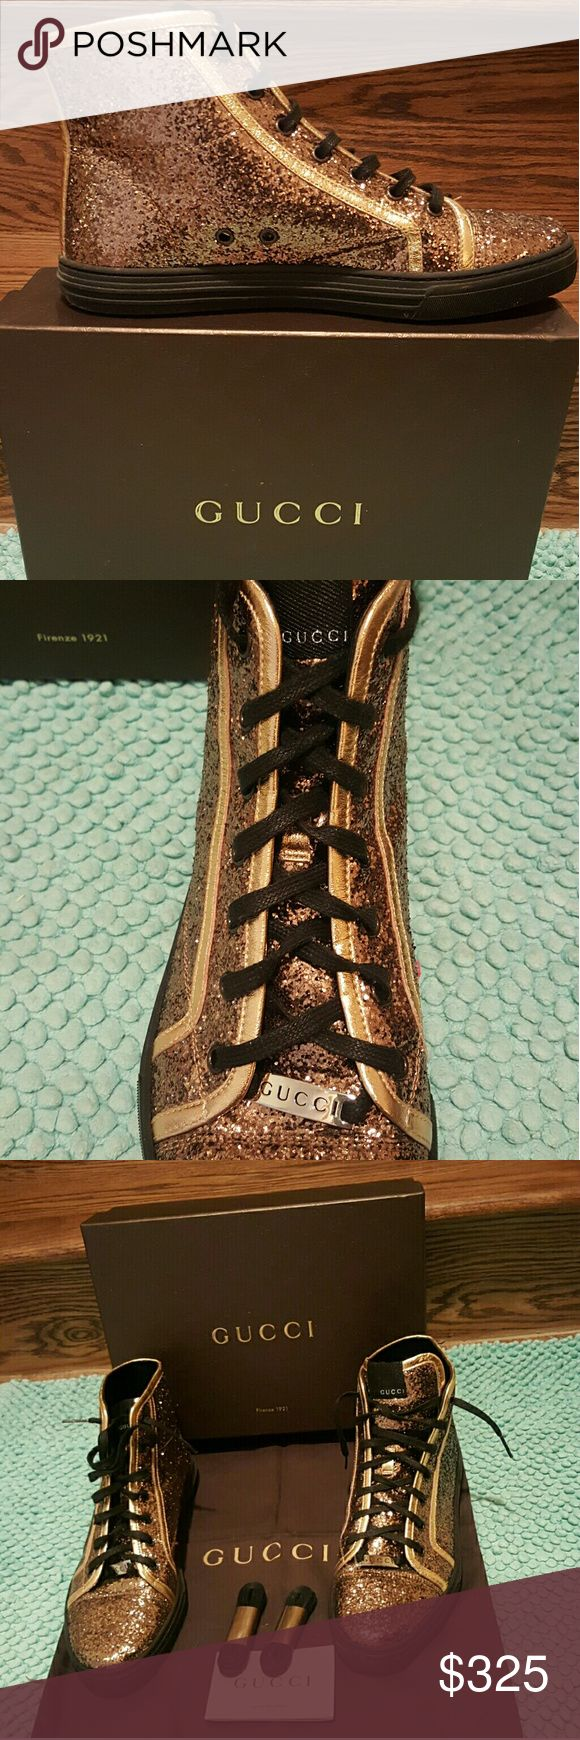 Gucci Glitter High Top Sneakers Gorgeous Gucci copper colored high top sneakers with Gucci laces.  Also included:  extra pair of laces, soft brown Gucci travel shoe bag, original Gucci box.  Size 10.5.  Worn twice.  Excellent condition. Gucci Shoes Ankle Boots & Booties